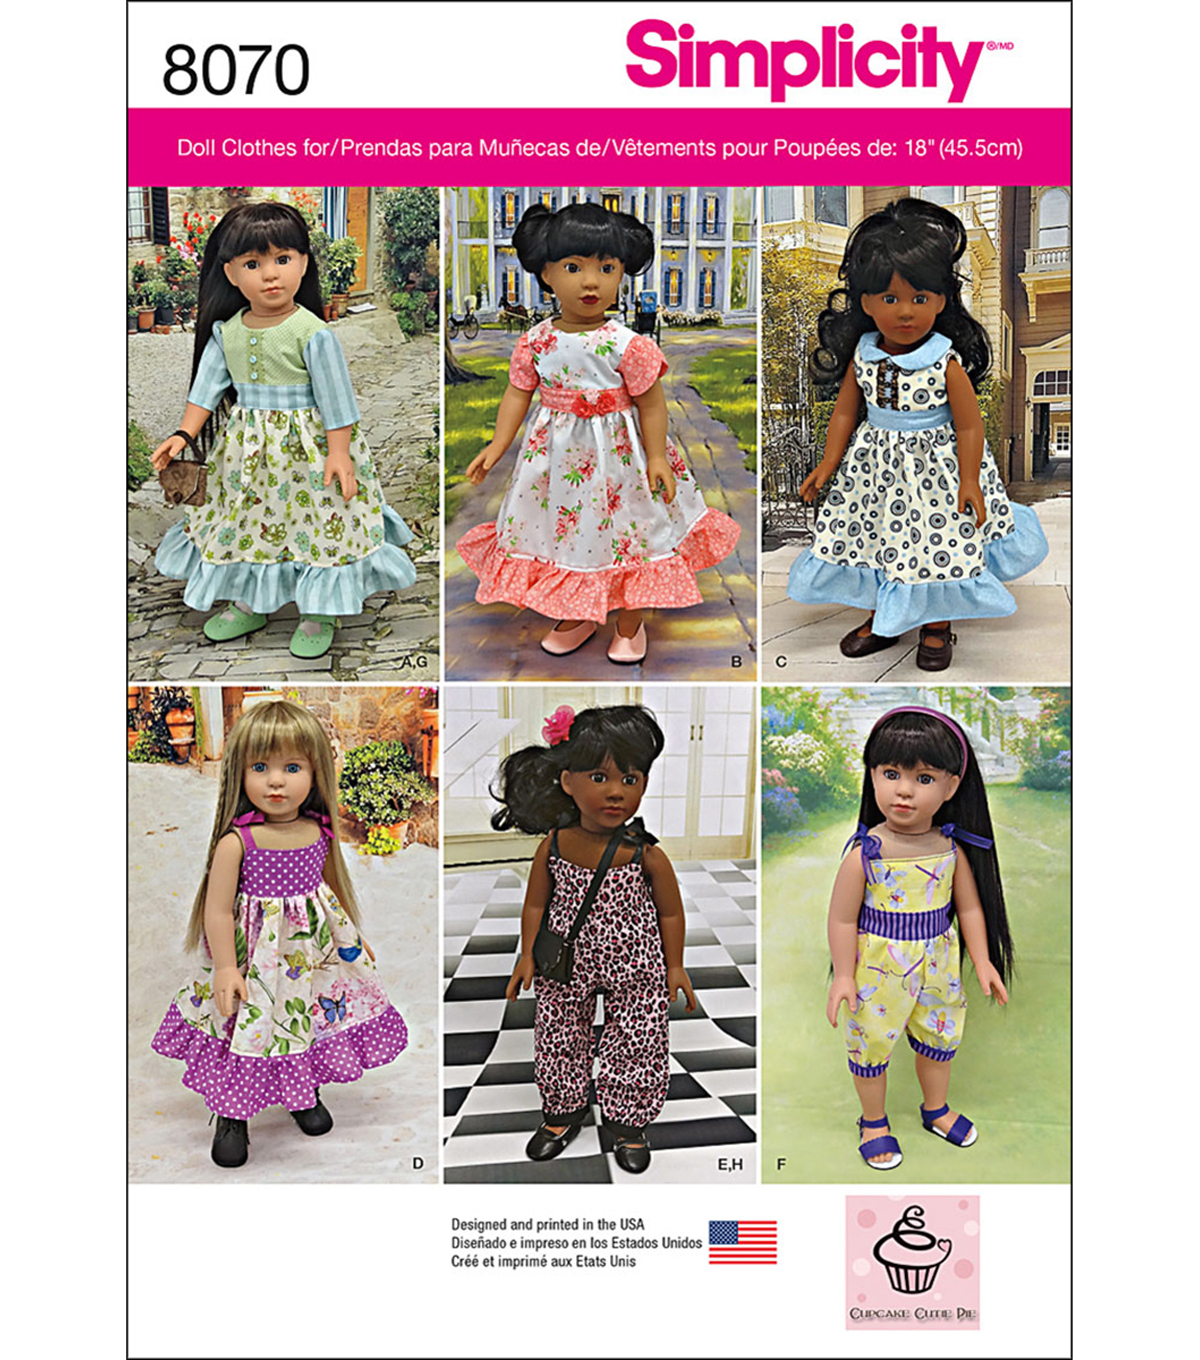 Simplicity Vintage Inspired 18 Doll Clothes-One Size